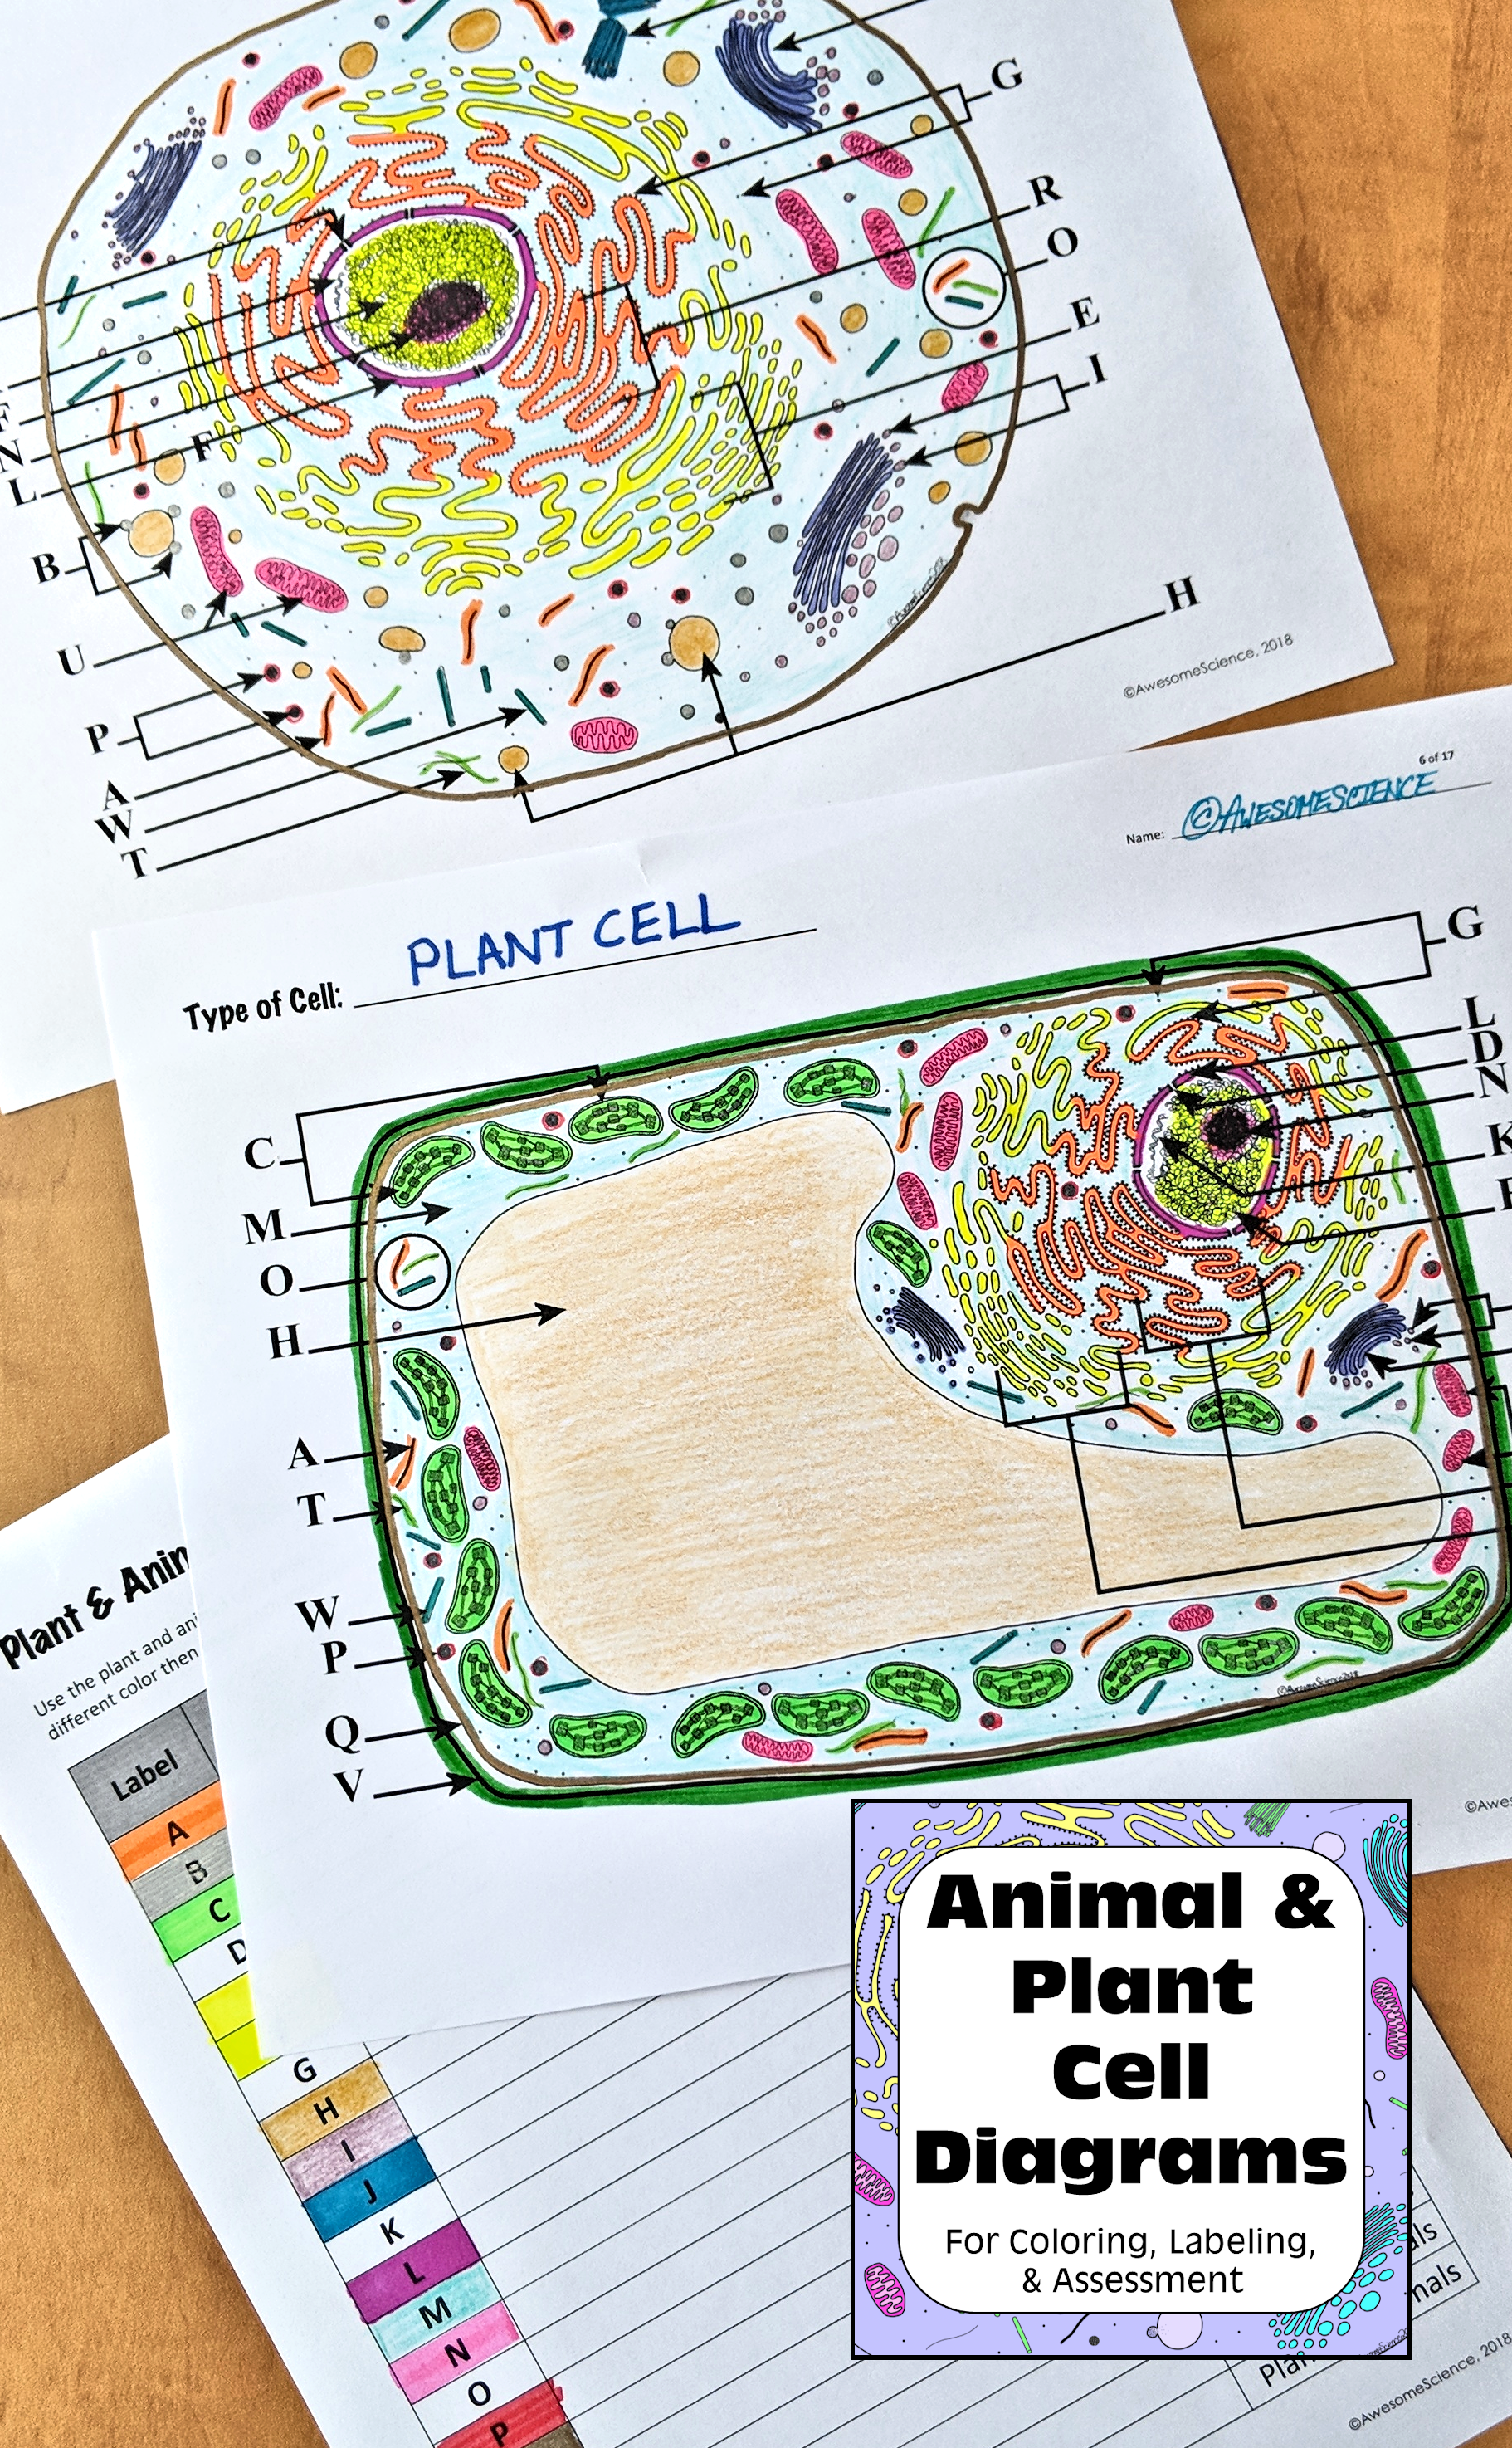 medium resolution of plant cell animal cell diagrams perfect for middle school or high school biology cell membrane plasma membrane cell wall centrioles chloroplasts